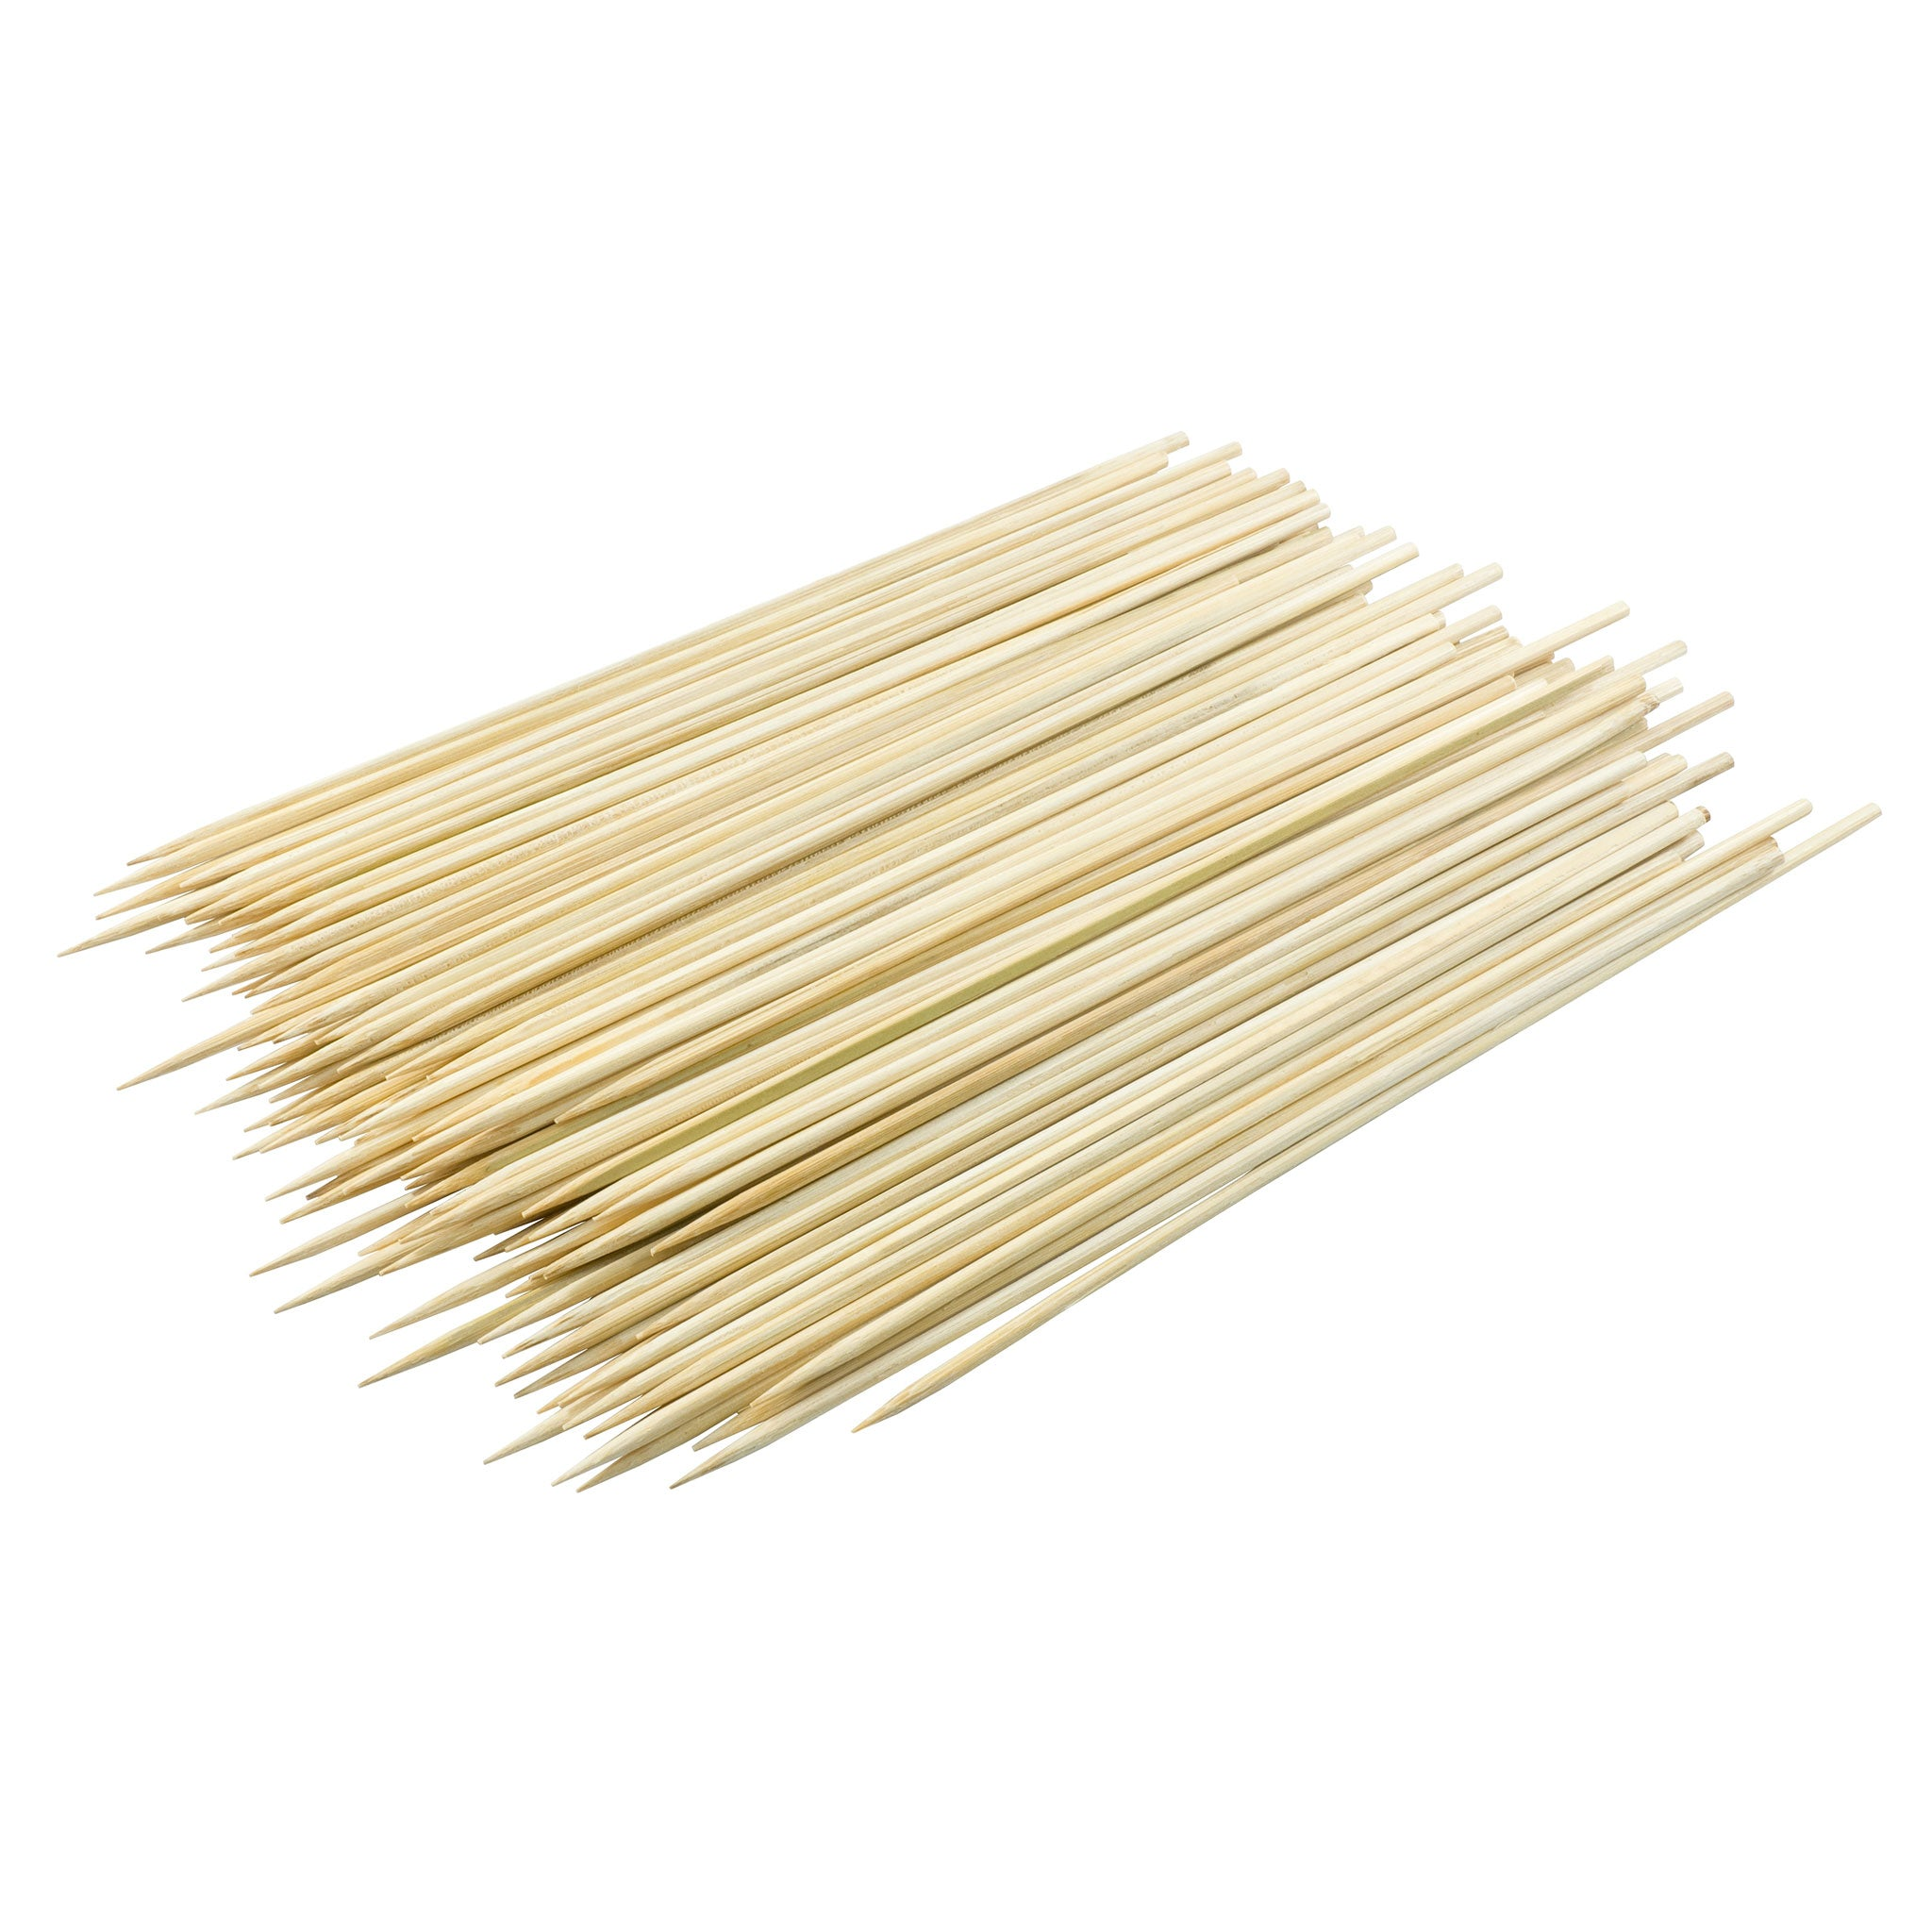 Bamboo Skewers (100pcs) - 20cm (8inch) by XO